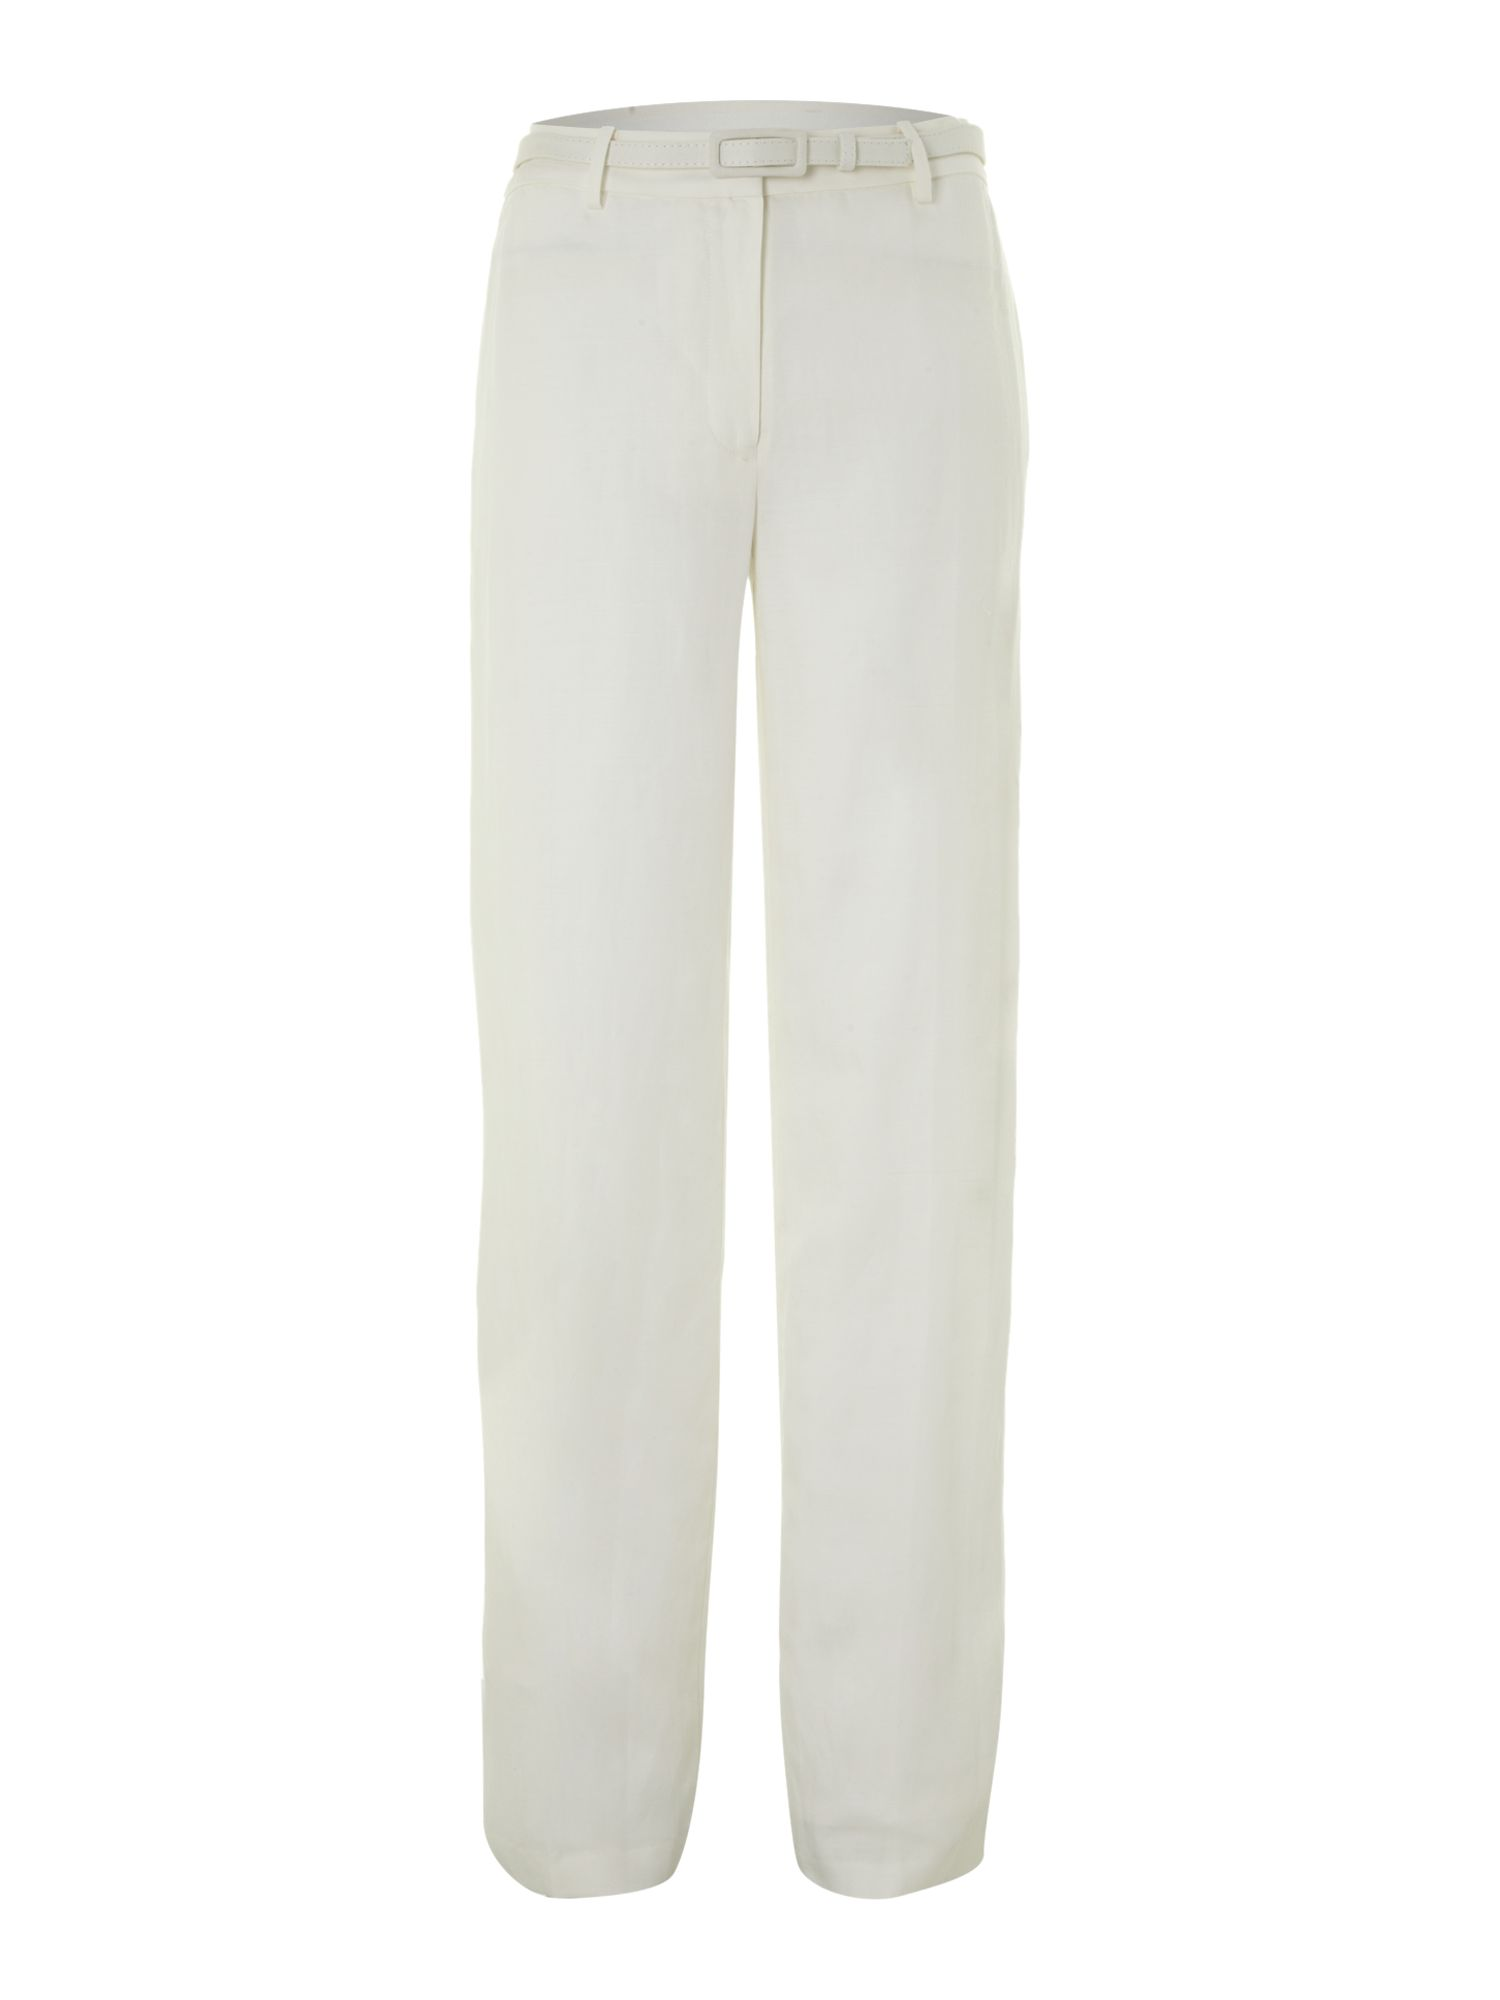 Wide leg linen trouser- Reg length